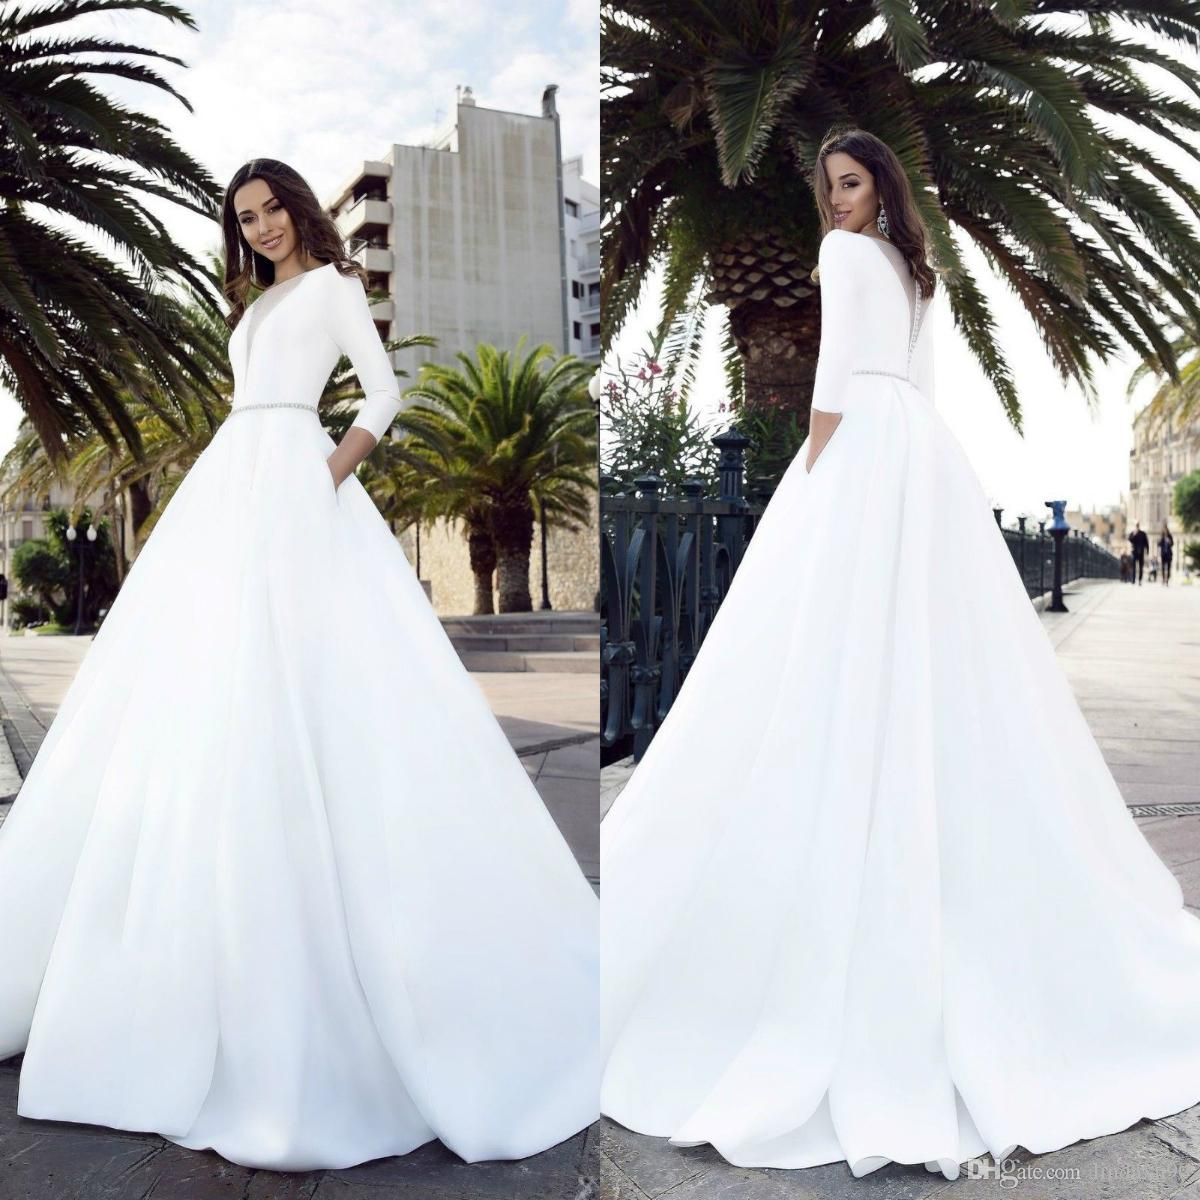 discount 2019 latest design pockets satin wedding dresses 3/4 long sleeve  bridal dress sweep train country style bridal gowns strapless wedding